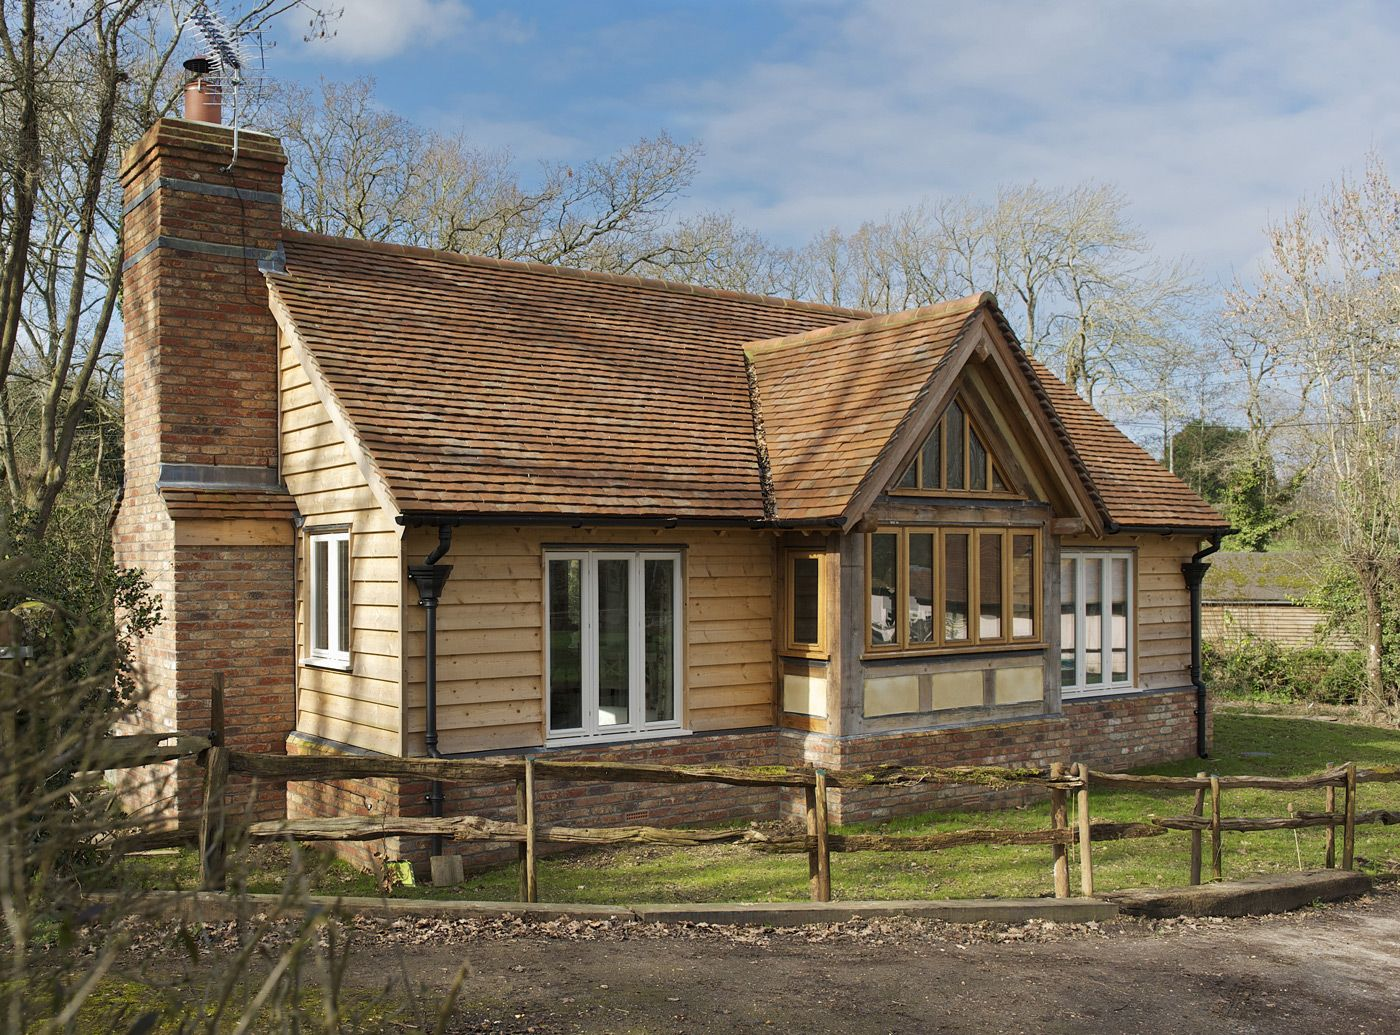 Single storey border oak oak framed houses oak framed for Timber frame bungalow